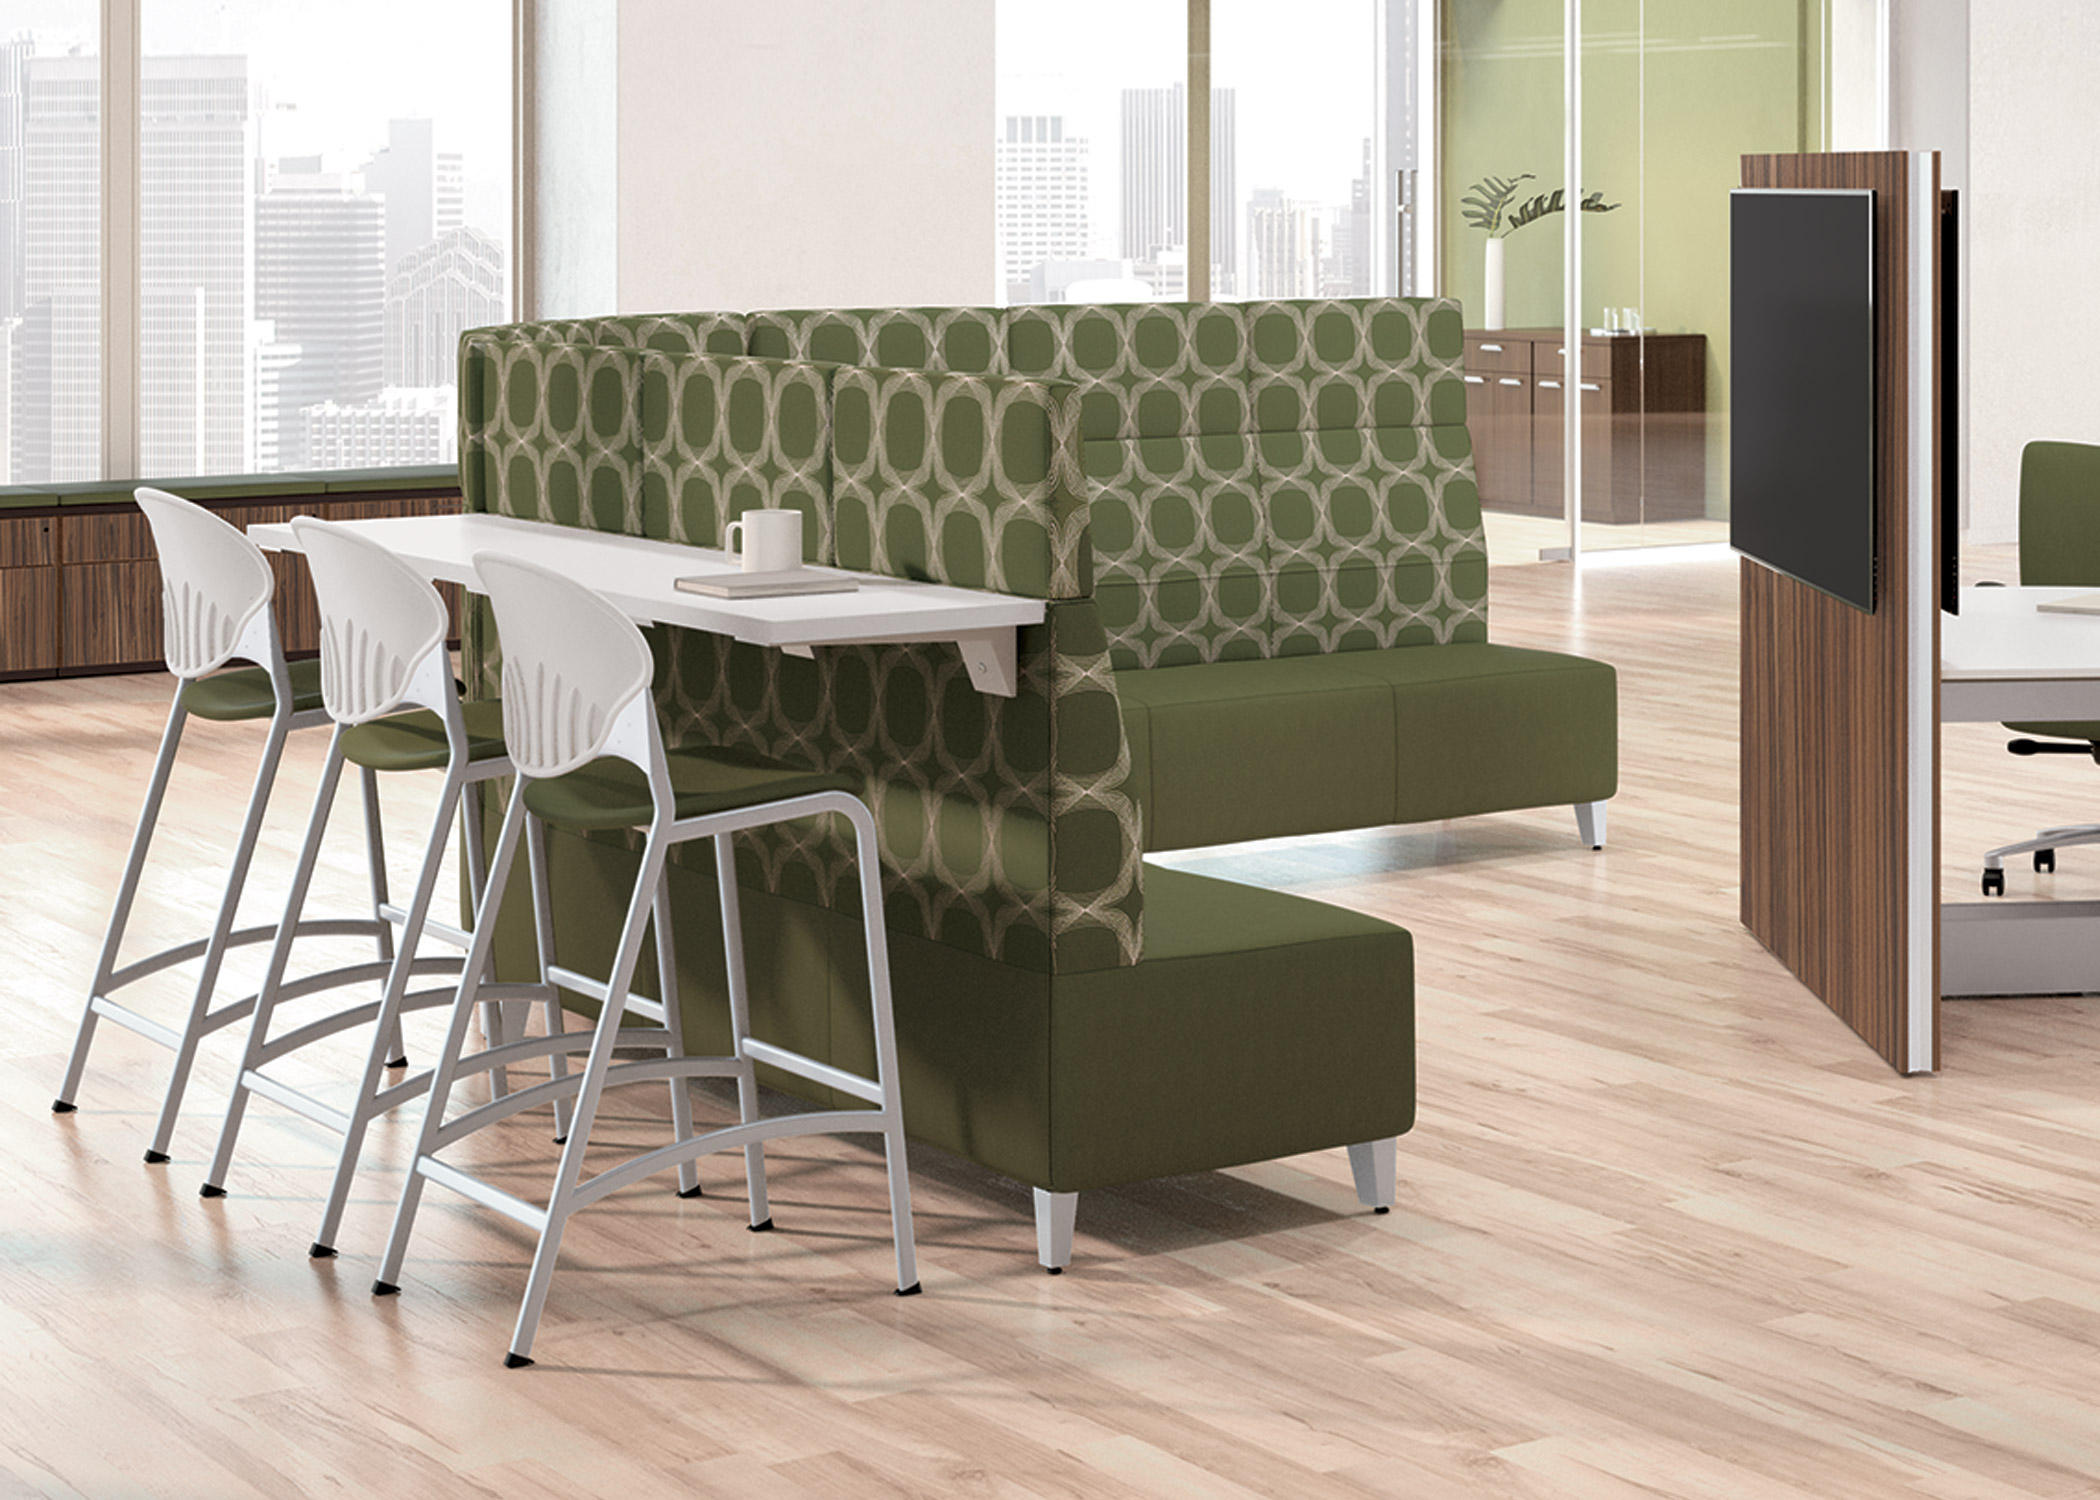 office club chairs chair covers for sale centurion fringe armless lounge from national